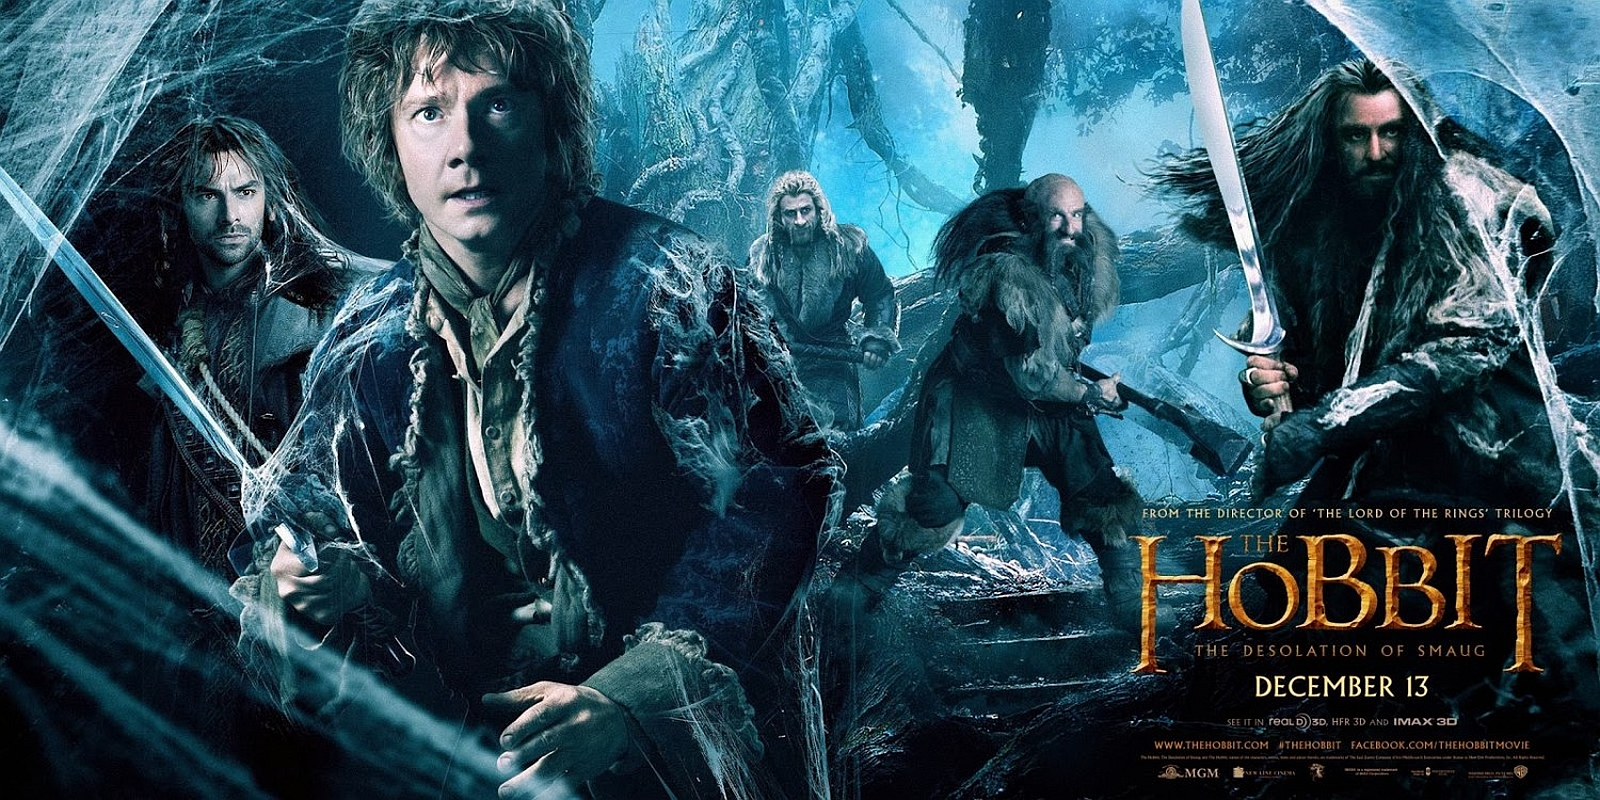 Desolation Hobbit of smaug iphone wallpaper recommend dress in autumn in 2019